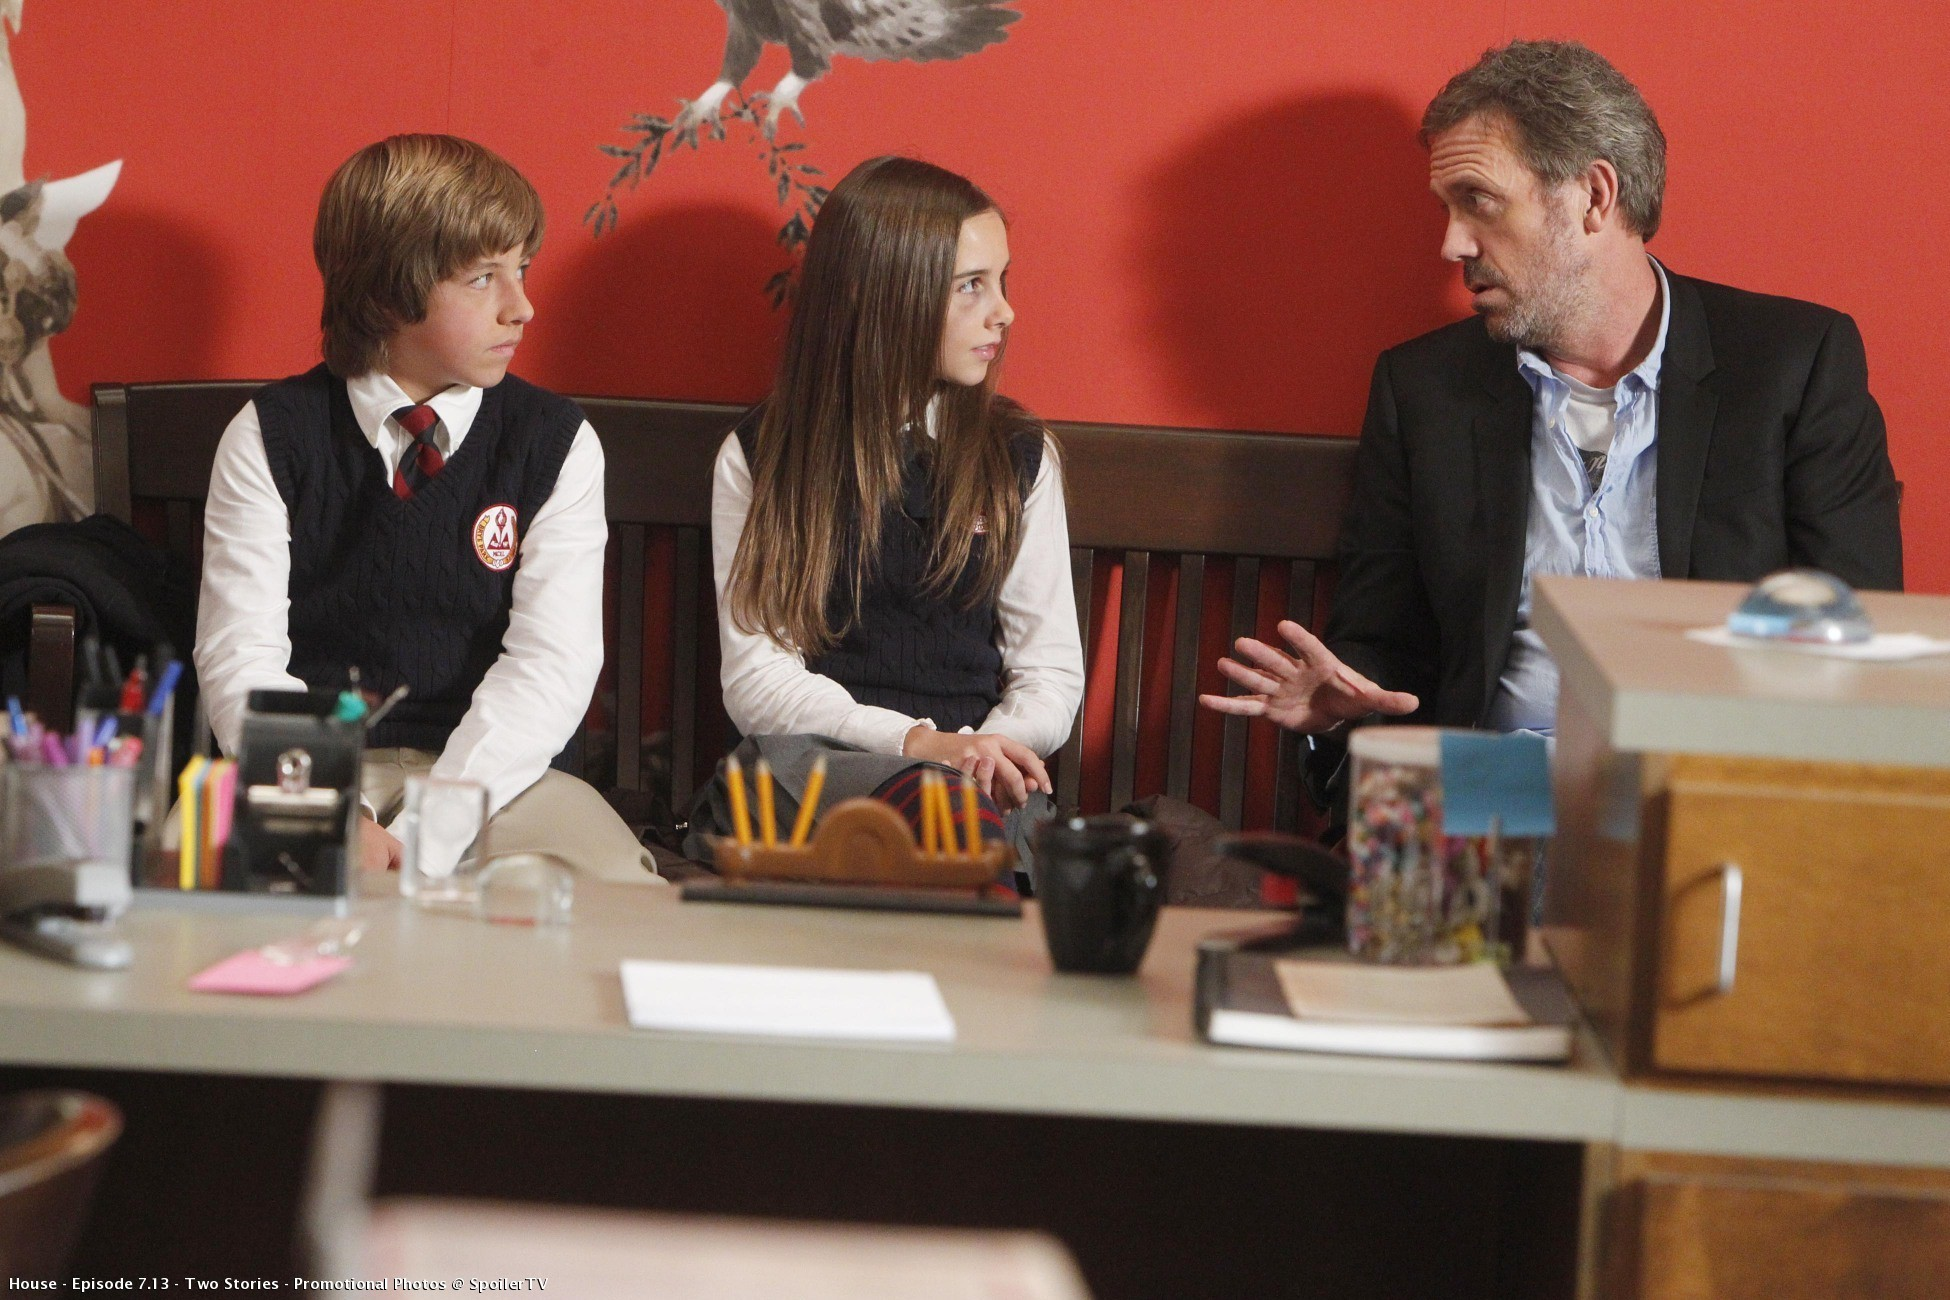 House - Episode 7.13 - Two Stories - Promotional foto-foto